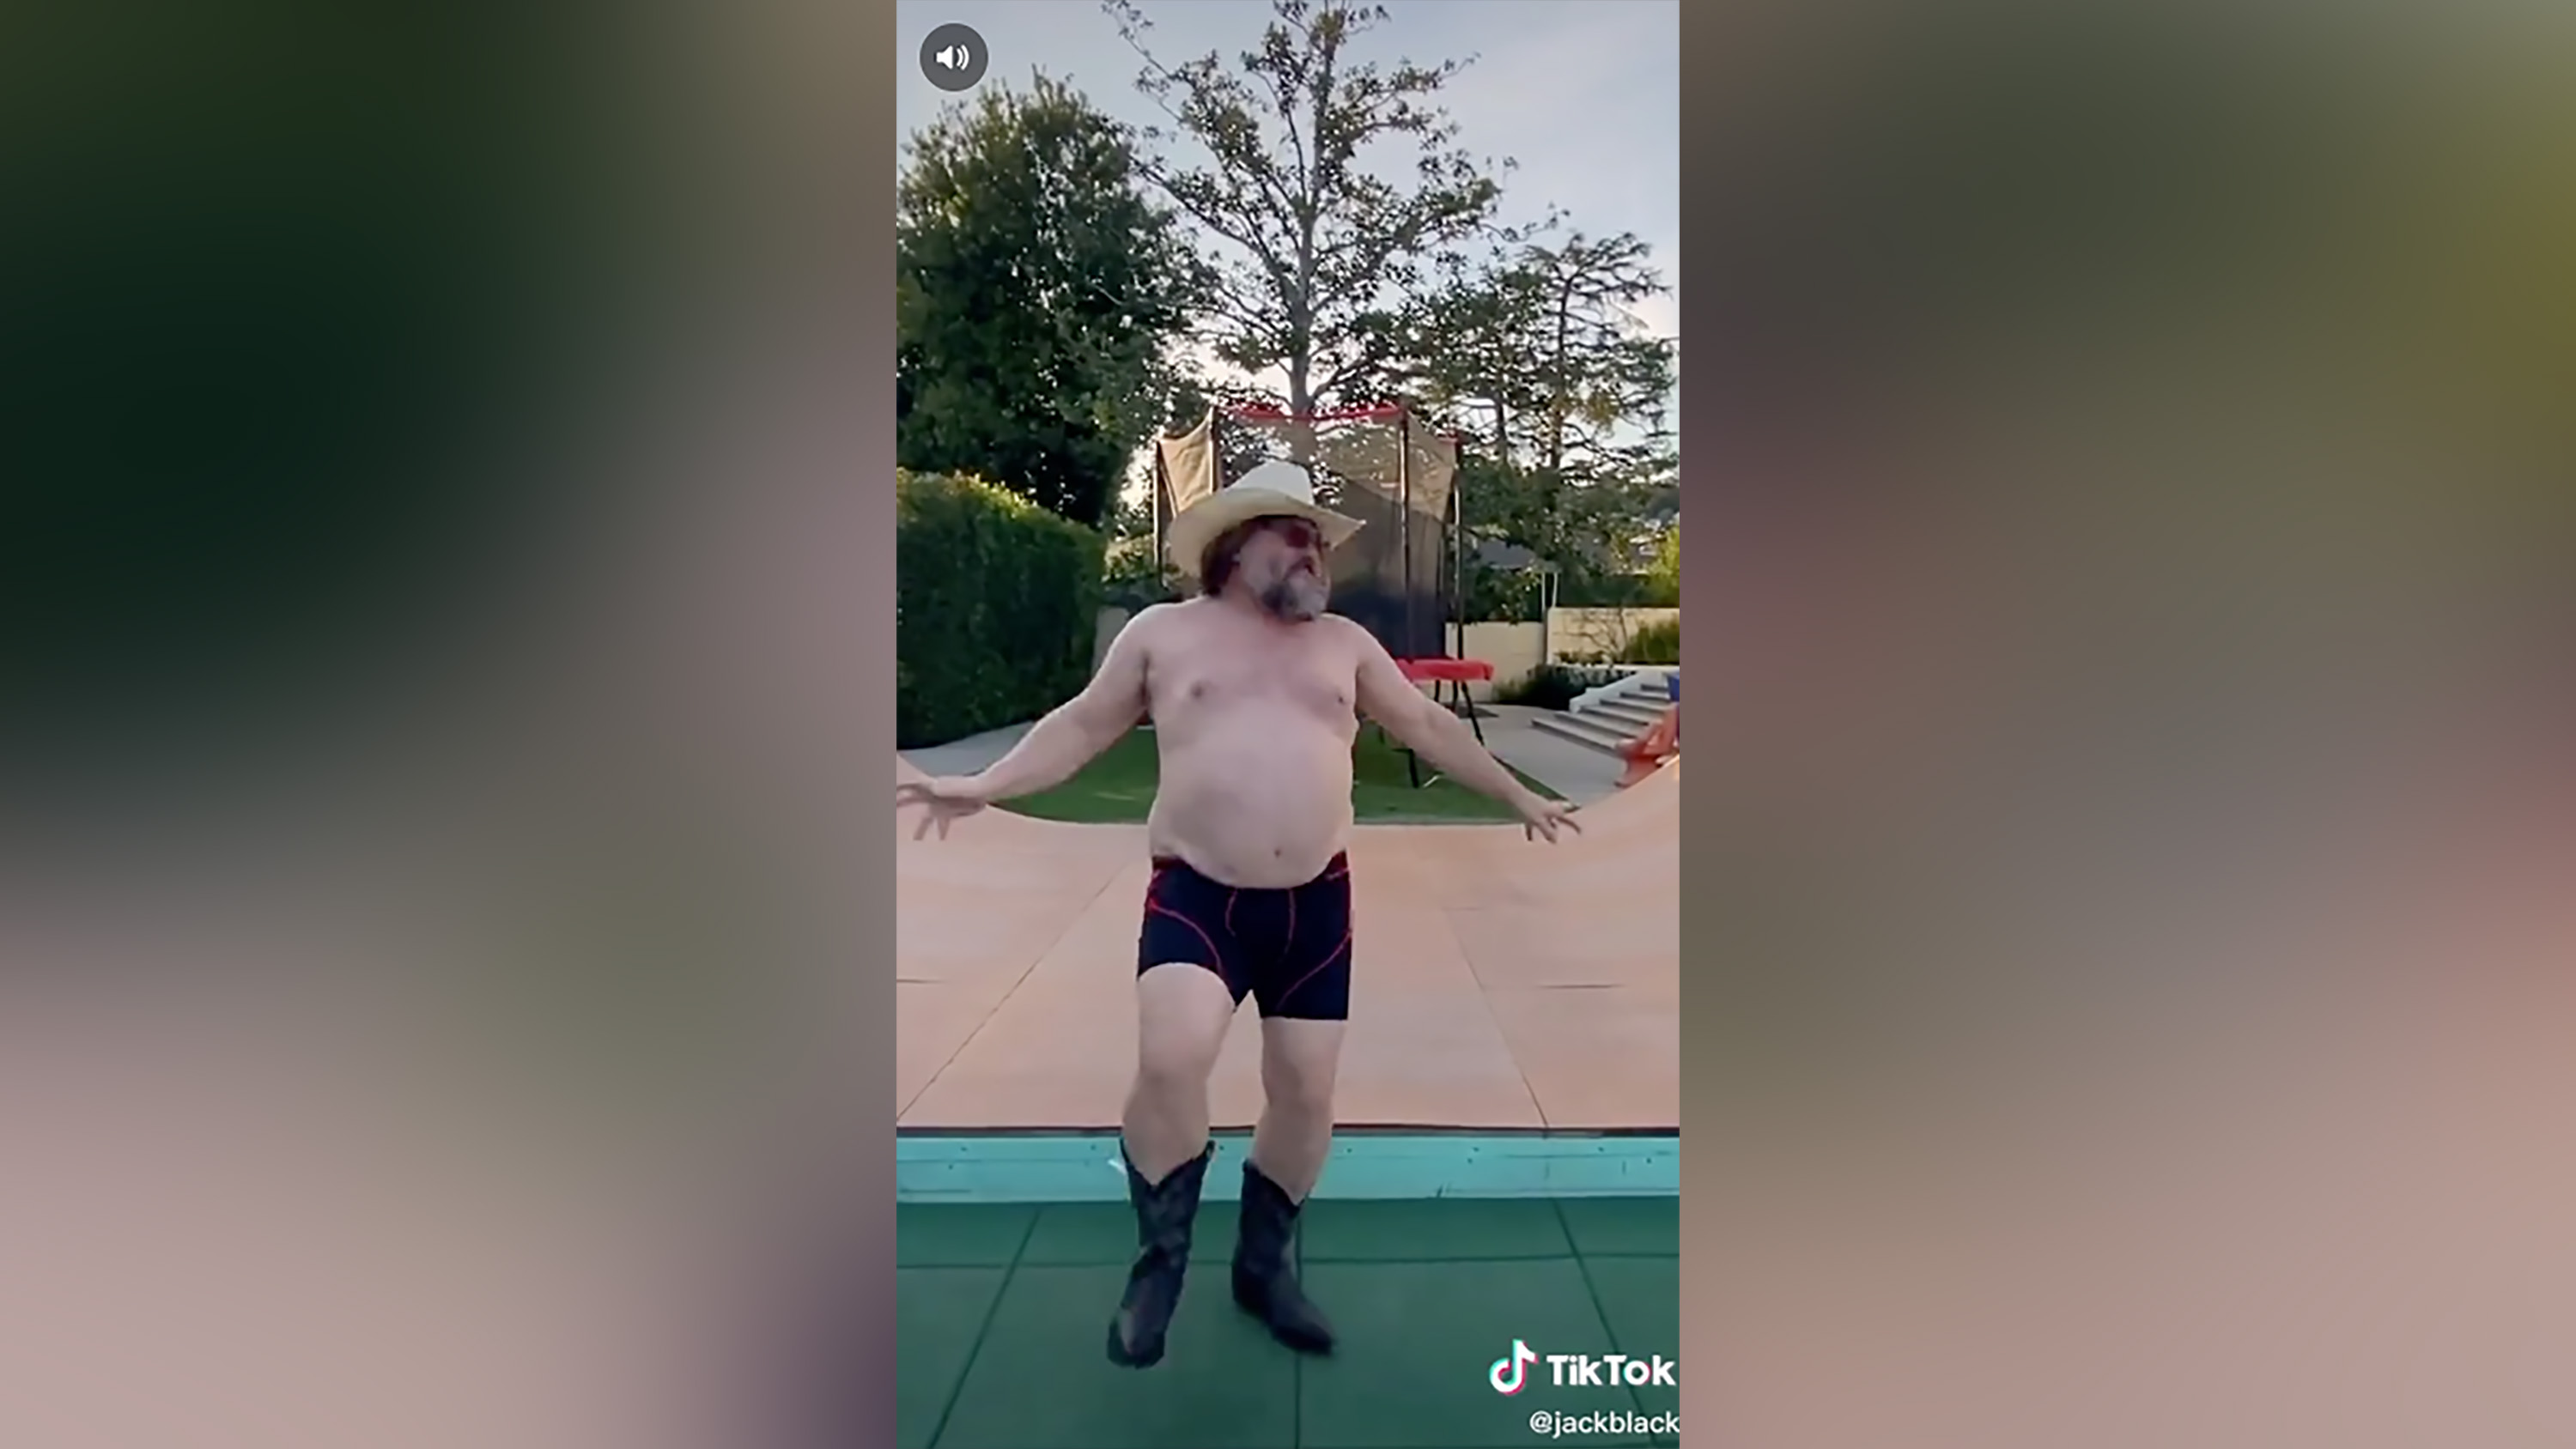 Jack Black's shirtless Quarantine Dance takes TikTok by storm